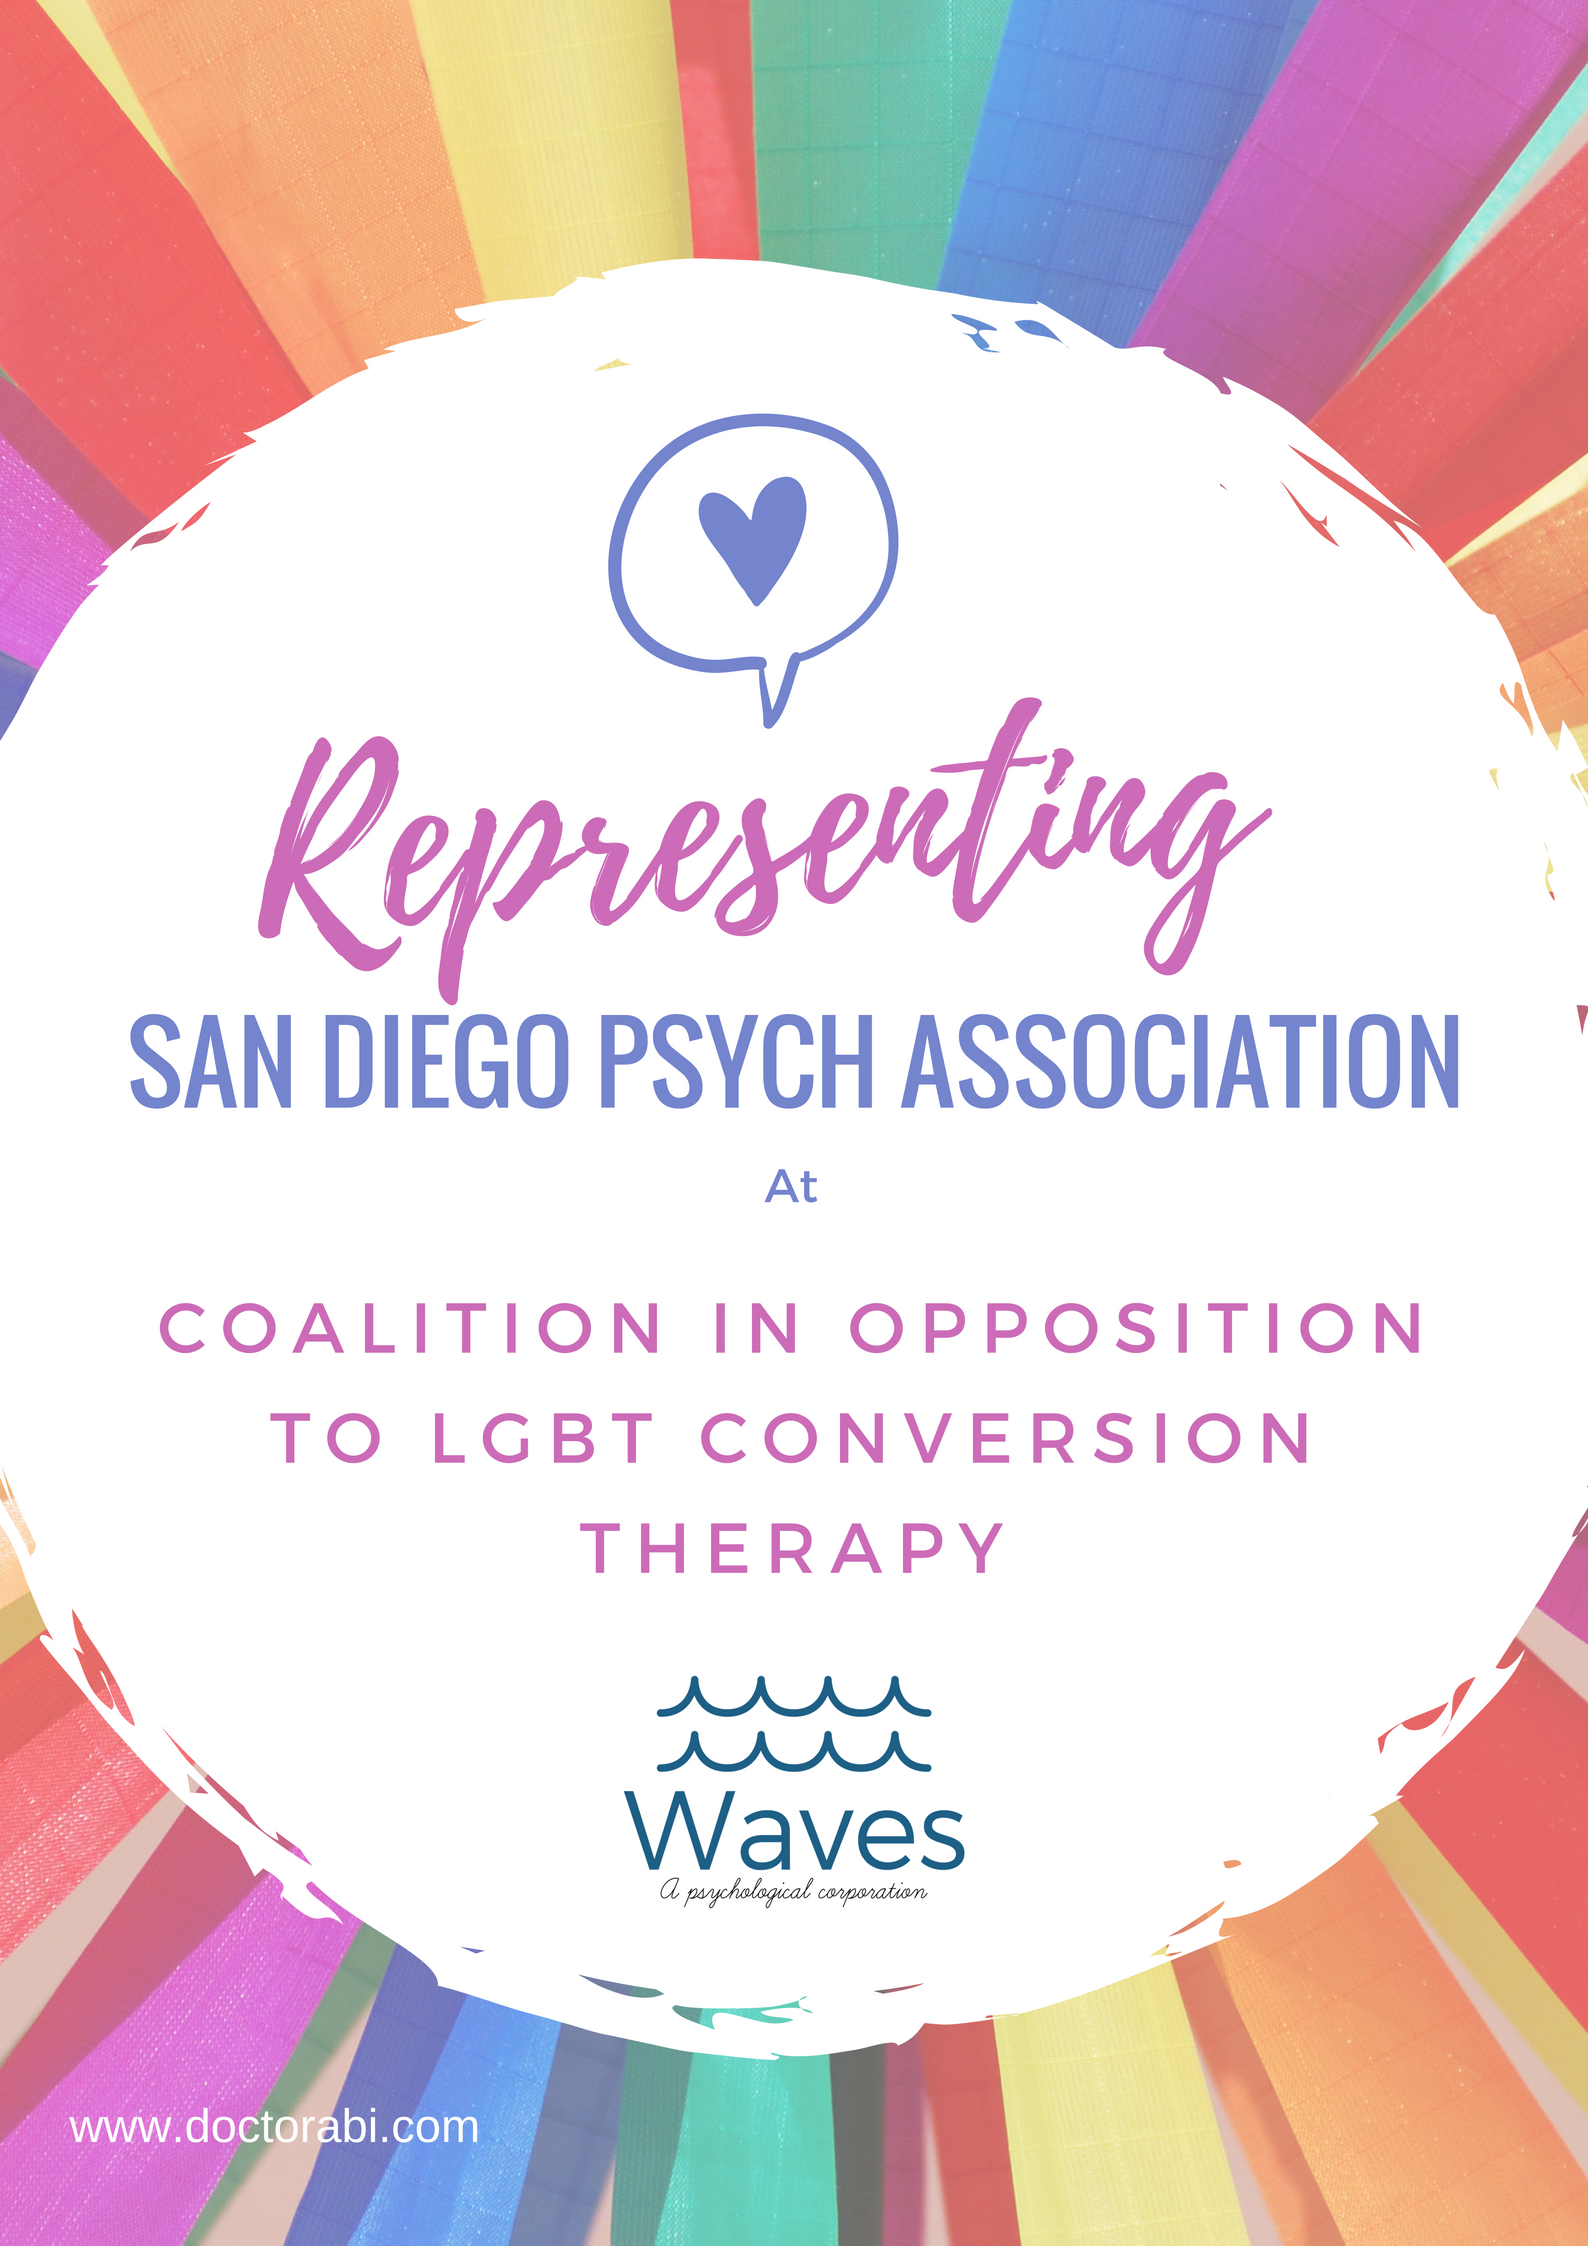 Representing San Diego Psych Association at Coalition in Opposition to LGBT Conversion Therapy Press Conference.